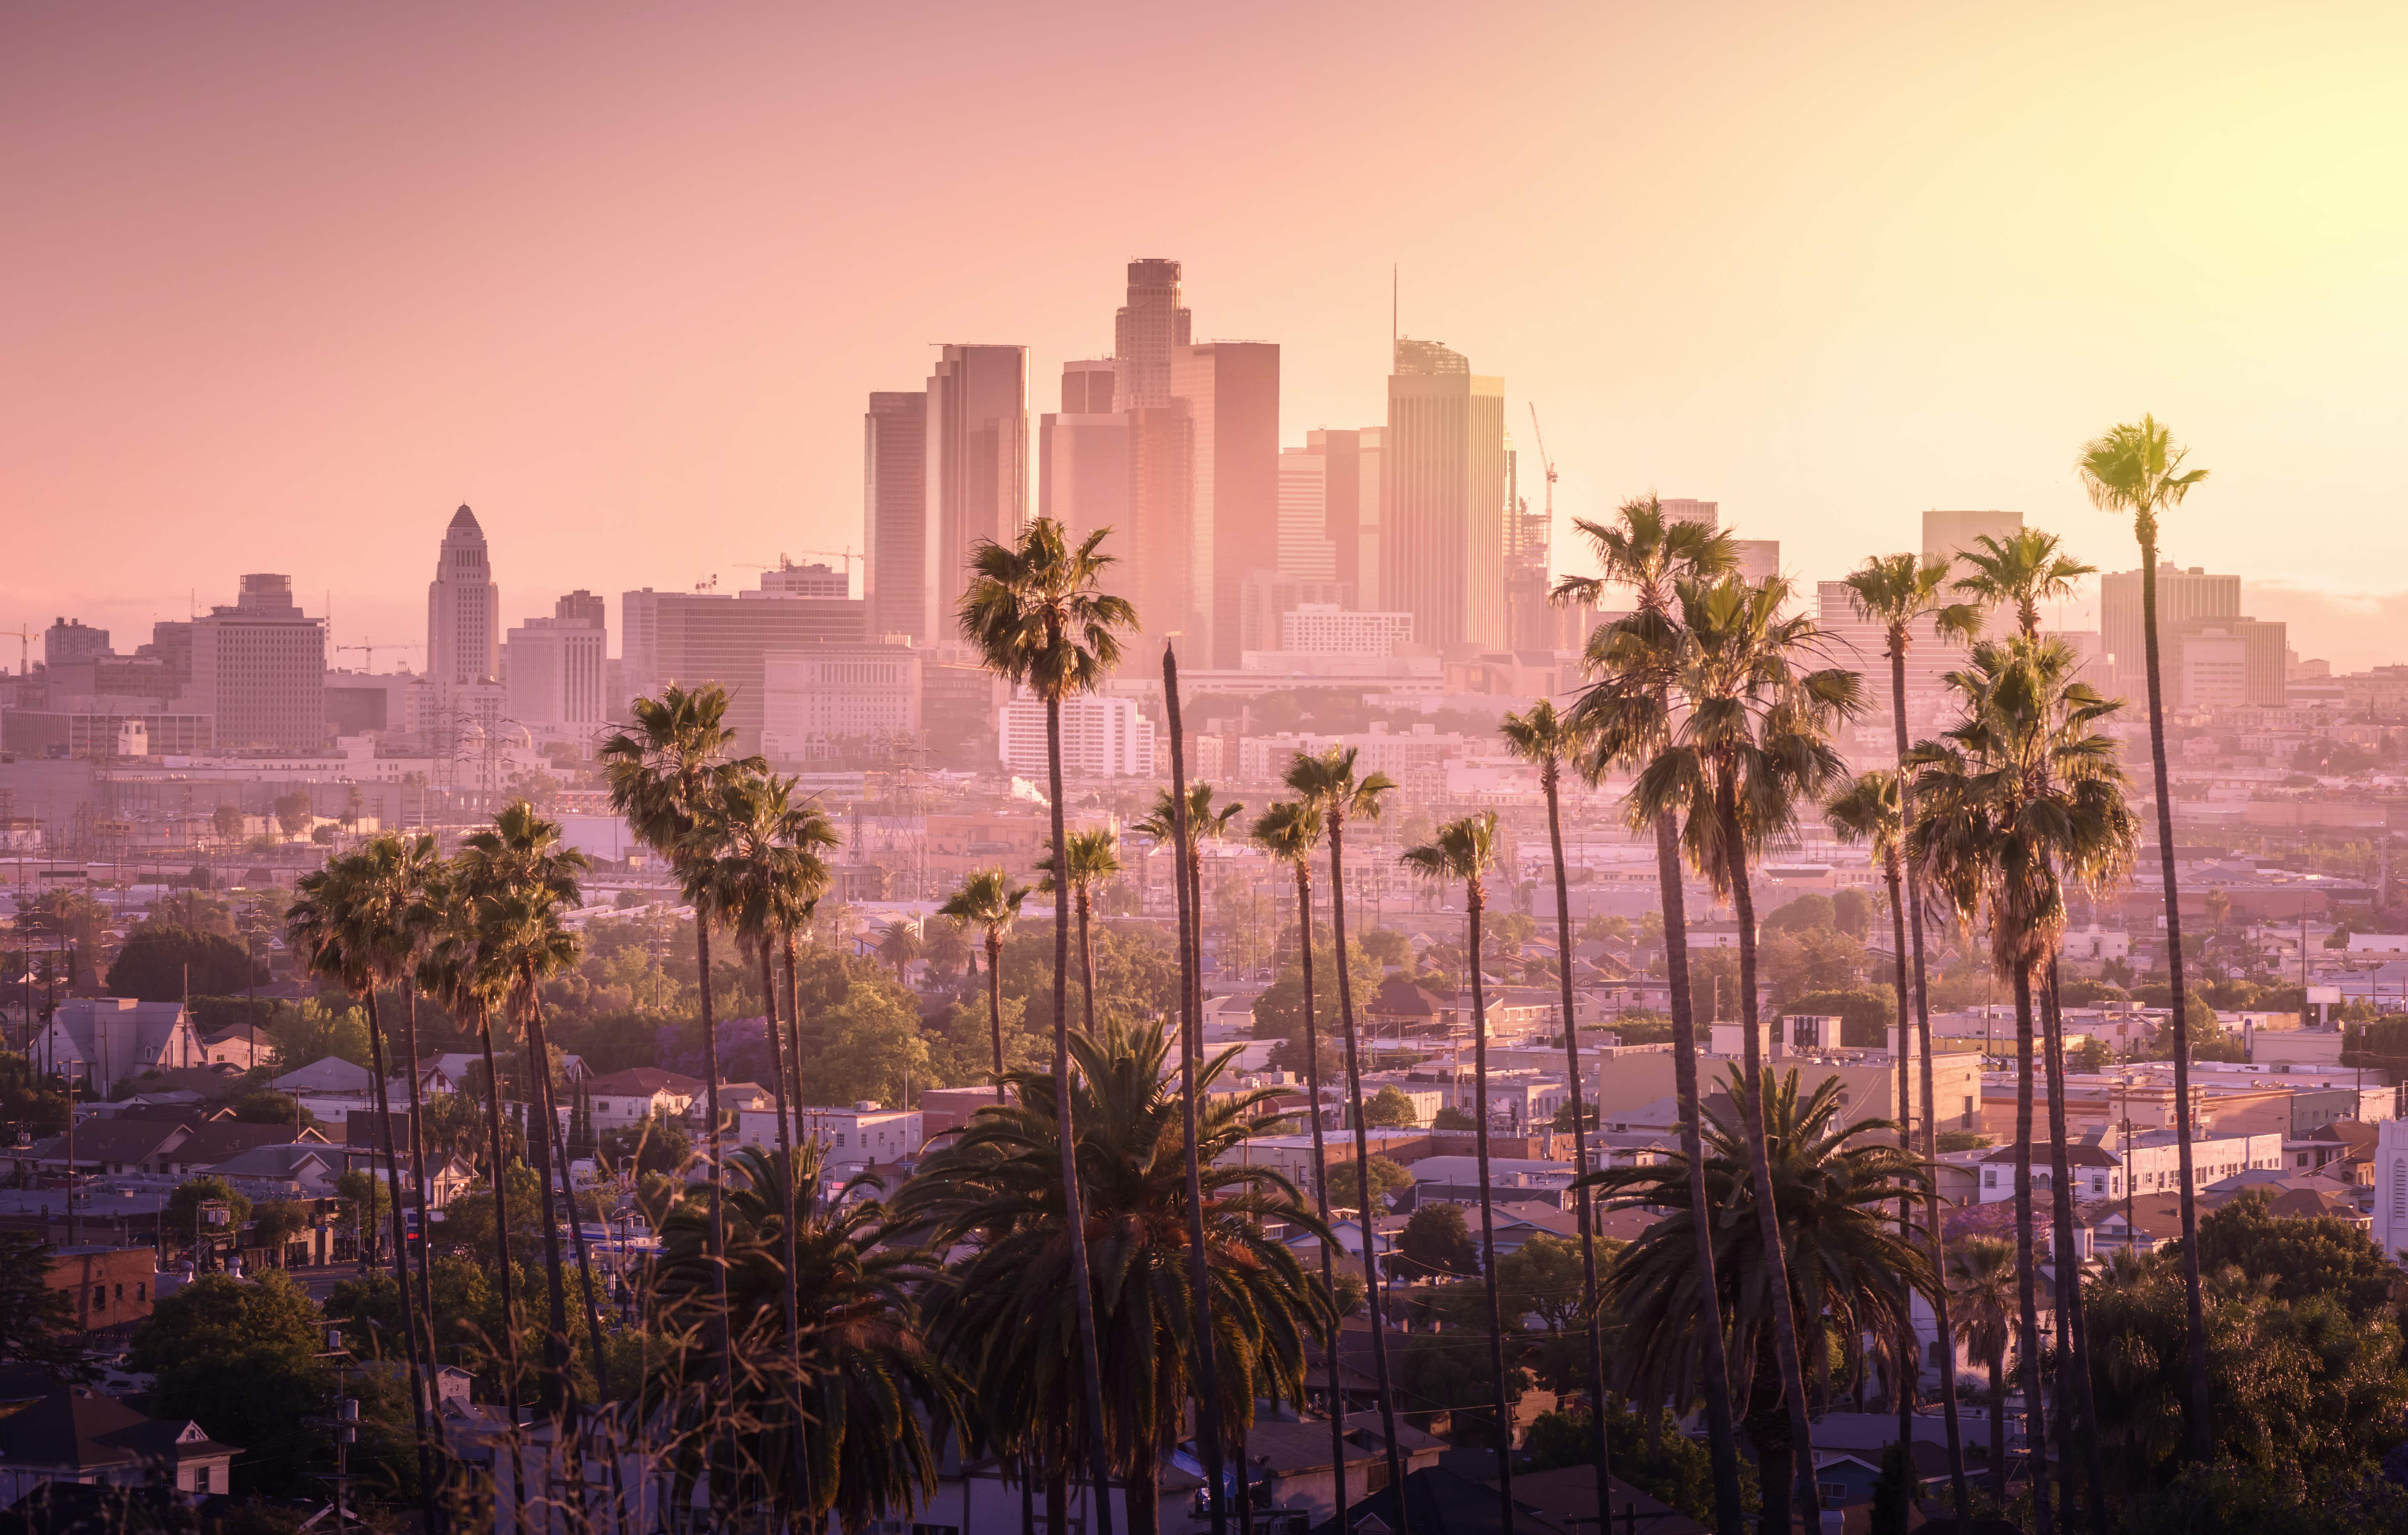 From fantastic outdoor locales to world-class restaurants and nightlife, LA has it all © Chones / Shutterstock